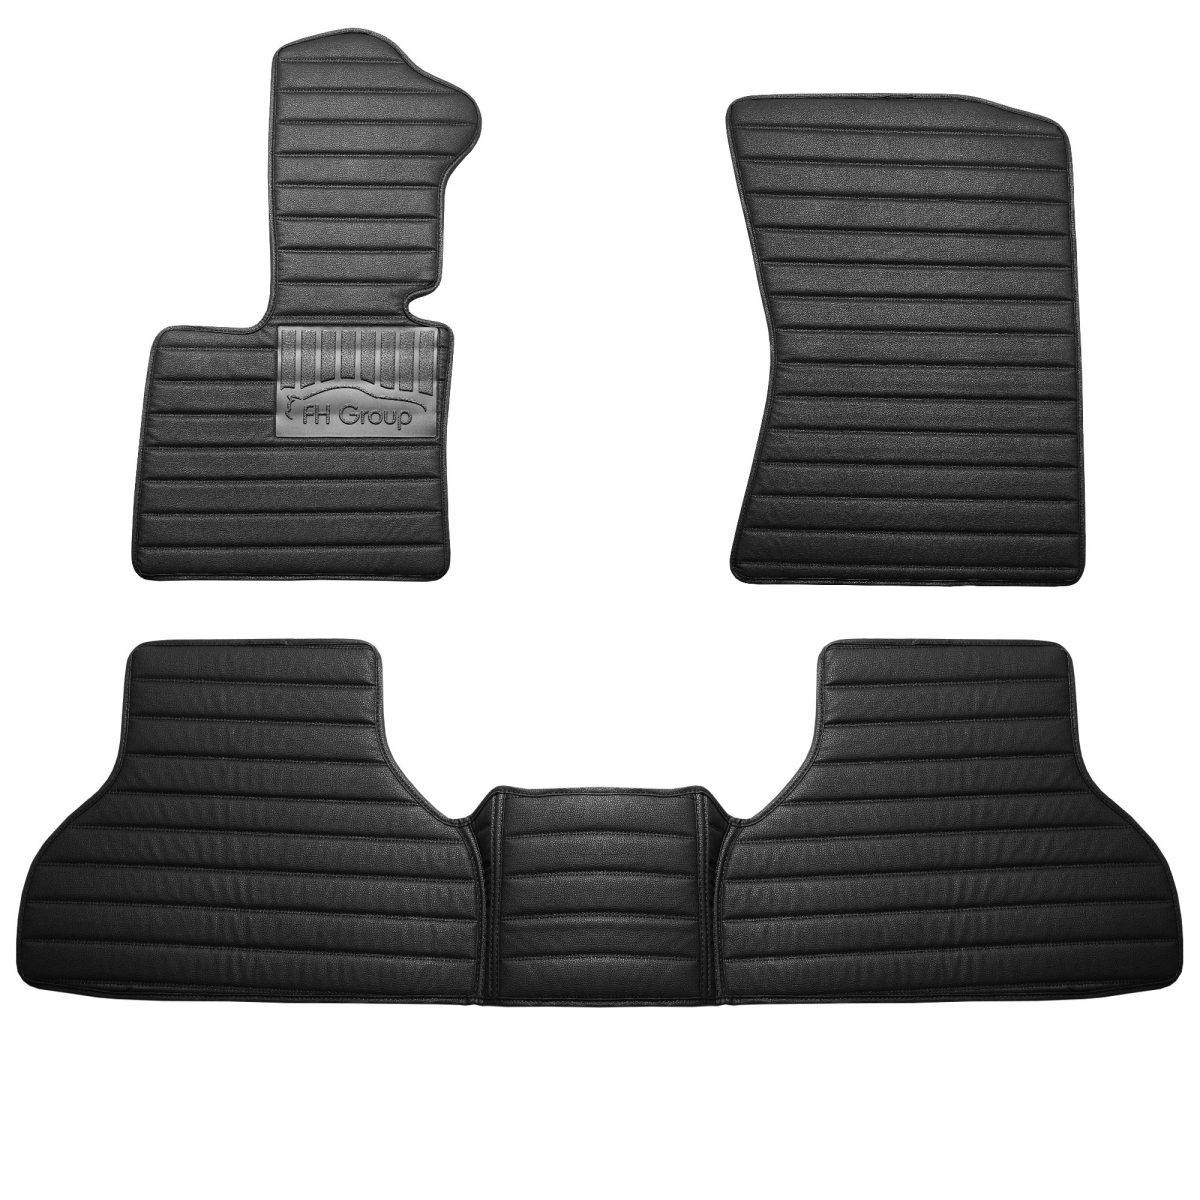 BMW X5 2013-2018 Custom-Fit Heavy-Duty Faux Leather Floor Mats 17